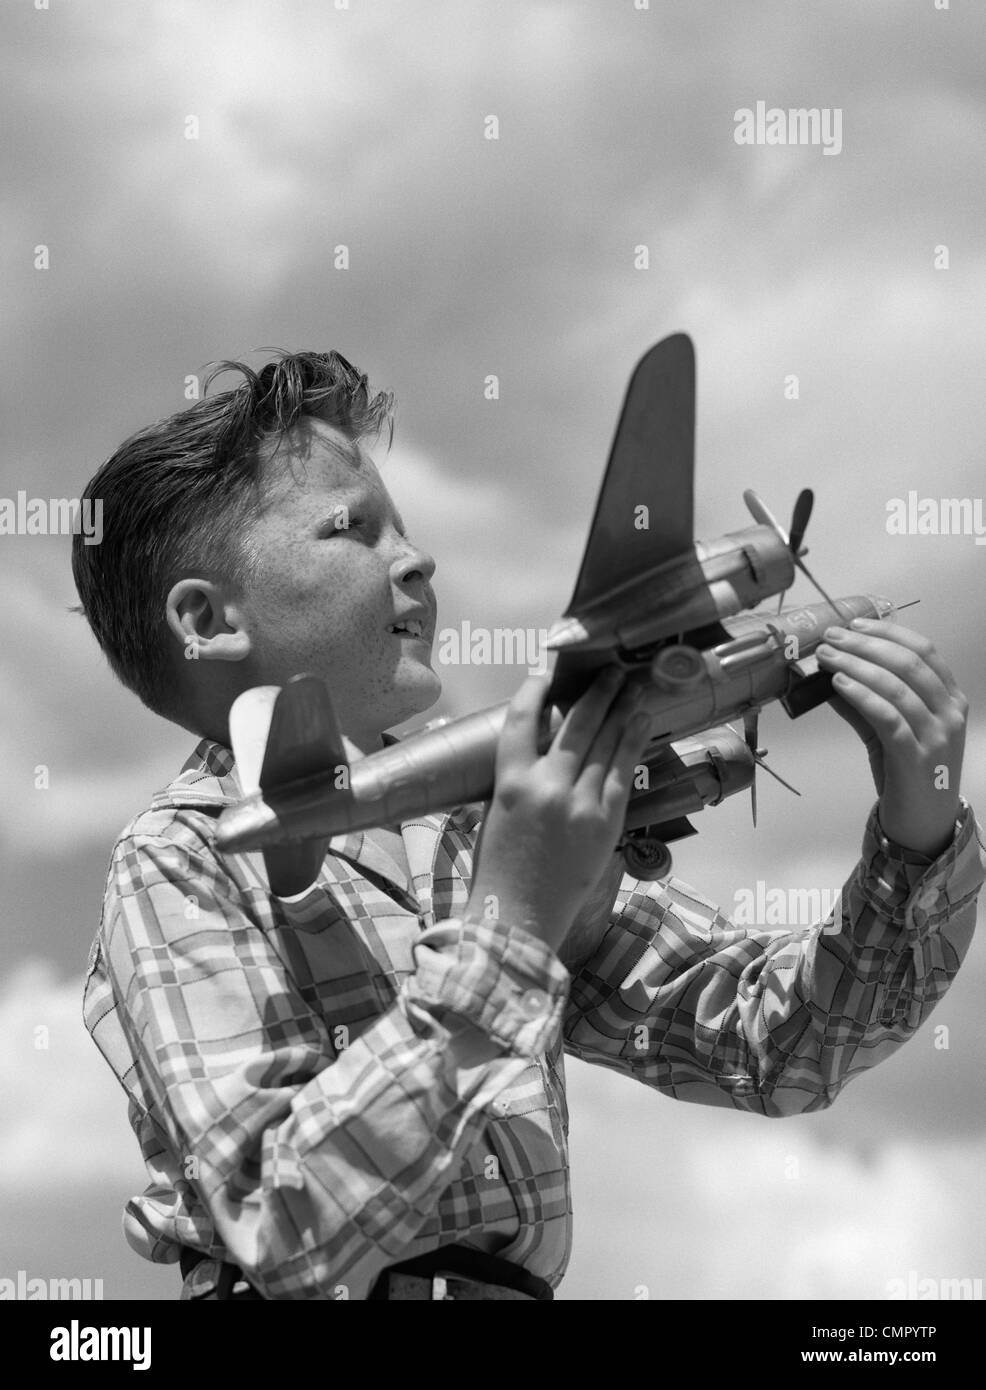 1930s 1940s 1950s PROFILE FRECKLE-FACED BOY HOLDING MODEL PROPELLER AIRPLANE - Stock Image